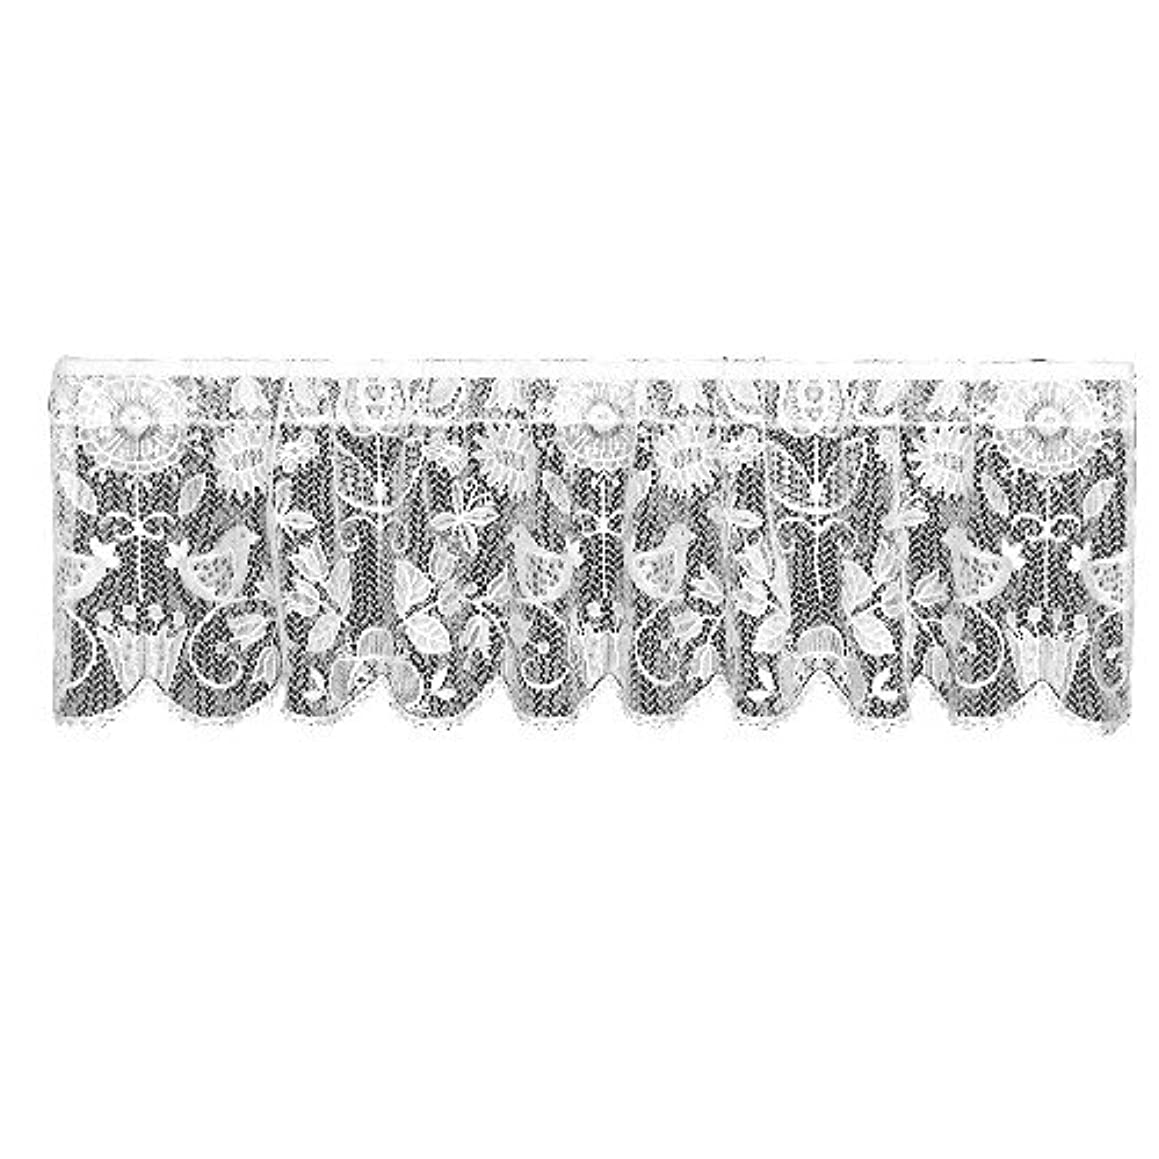 Heritage Lace Rhapsody 60-Inch Wide by 16-Inch Drop Champagne Valance